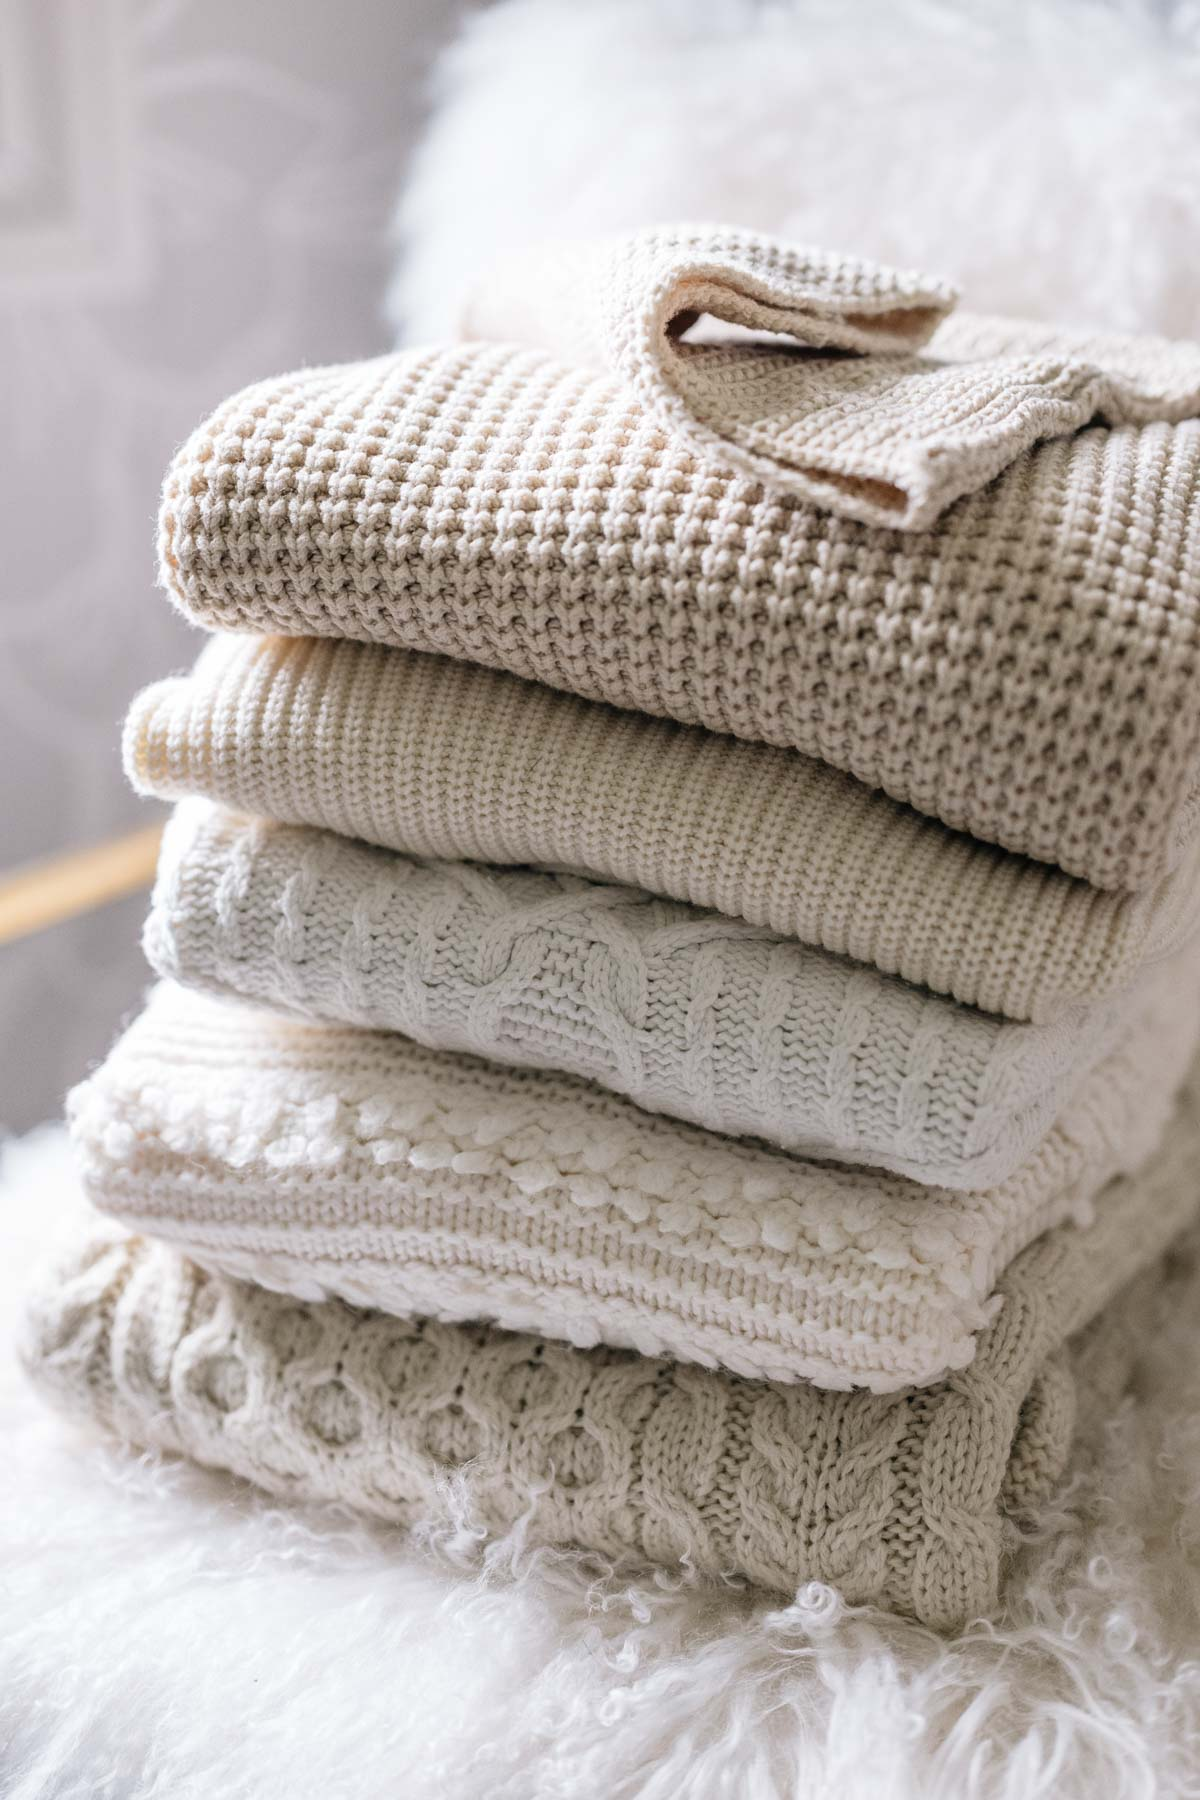 Jess Ann Kirby organizes her neutral colored chunky knit sweaters at her home in Rhode Island